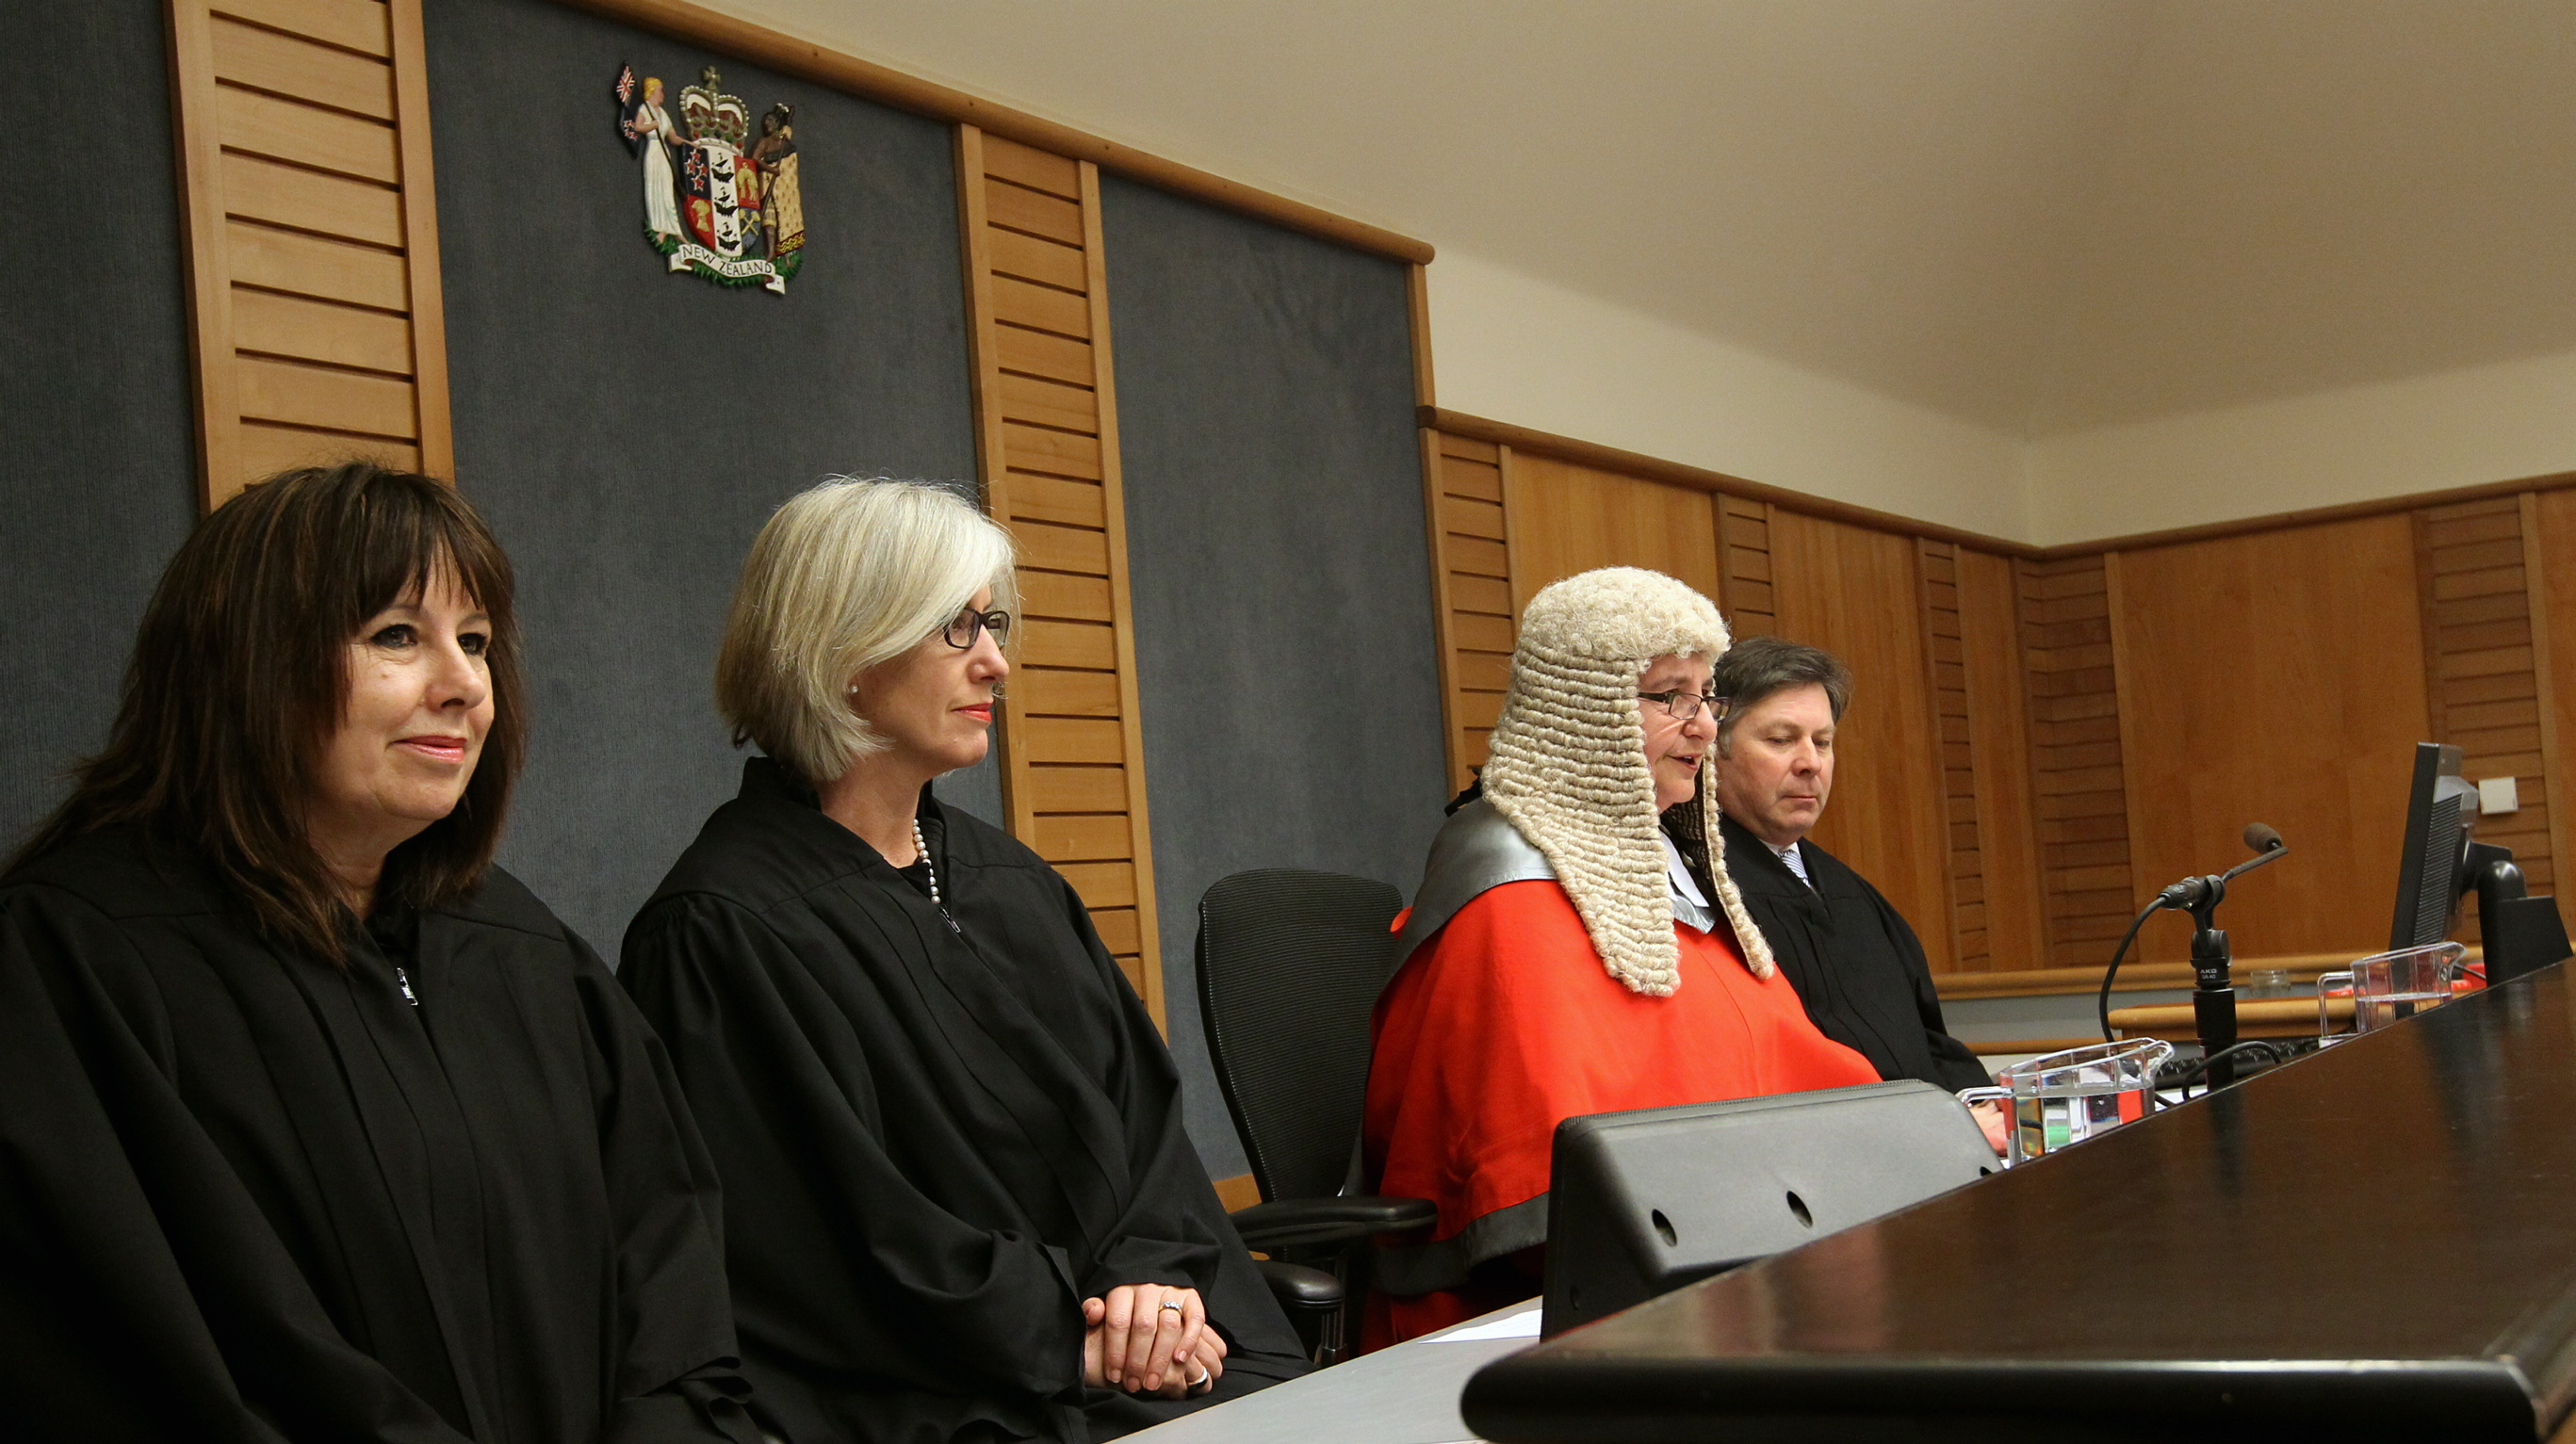 Anna Skellern Photos jock anderson's caseload: judges do it the old way - nz herald